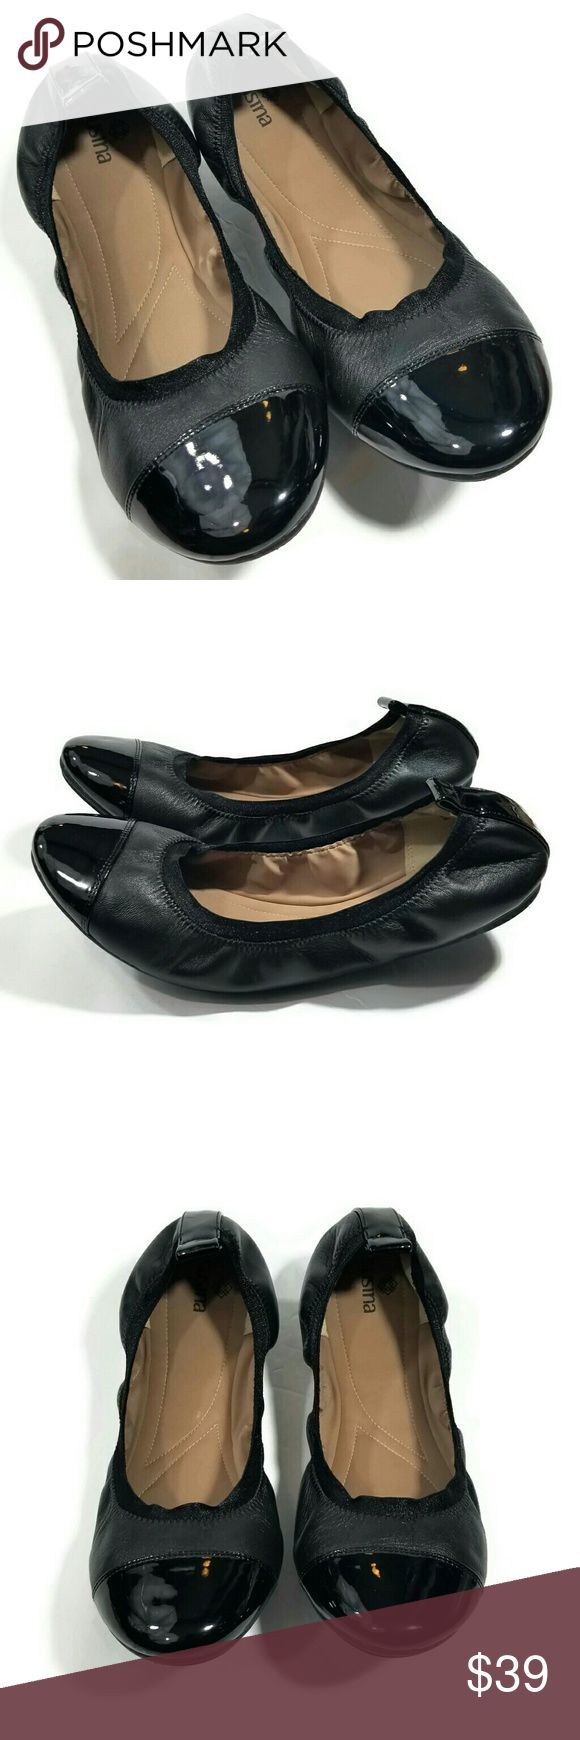 Susina black leather flats Great condition. Size 9M. Genuine leather, balance manmade. Color black with tan comfy insoles. Only used once. Elastic collar, pull tab on back of shoe, round cap toe and comfy padded footbed. From Nordstrom. Susina Shoes Flats & Loafers